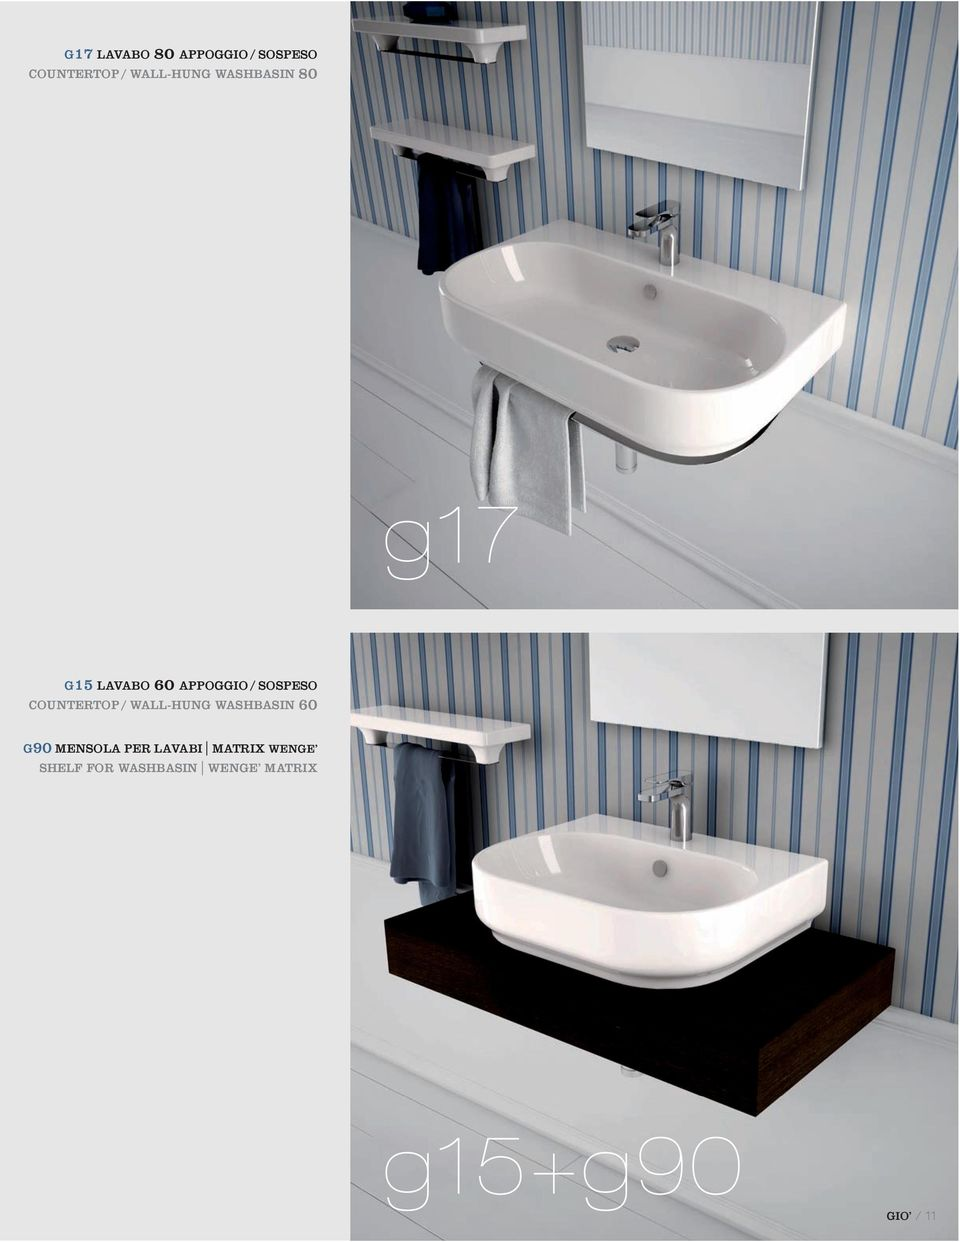 COUNTERTOP / WALL-HUNG WASHBASIN 60 G90 MENSOLA PER